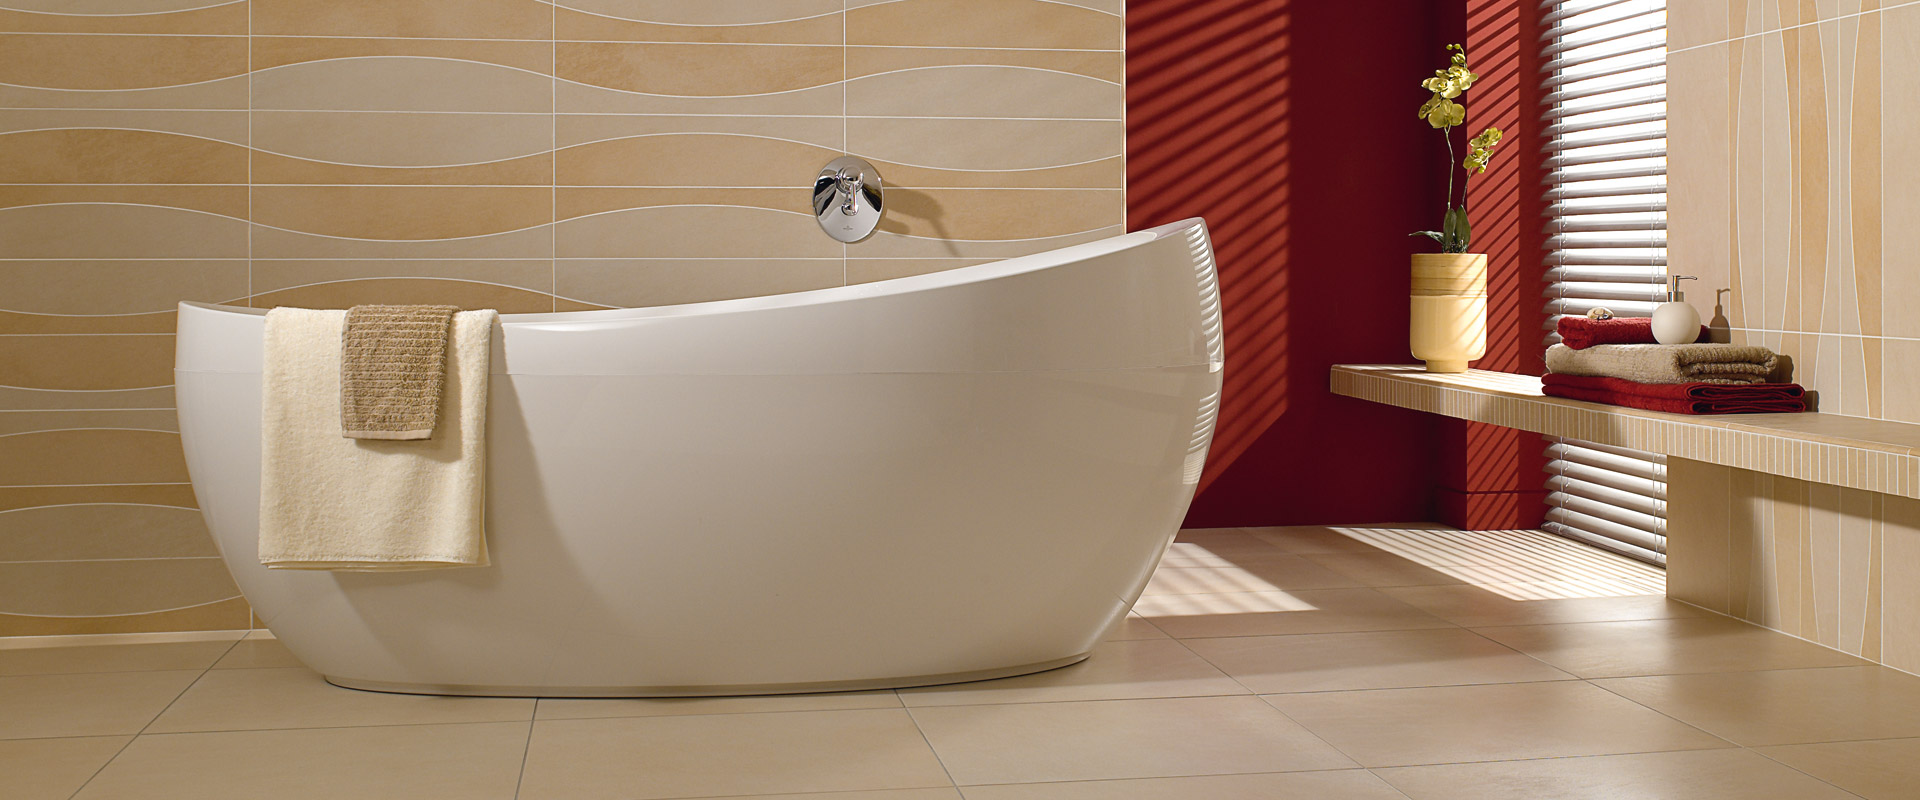 Aveo Collection By Villeroy Boch Modern Design For Your Bathroom